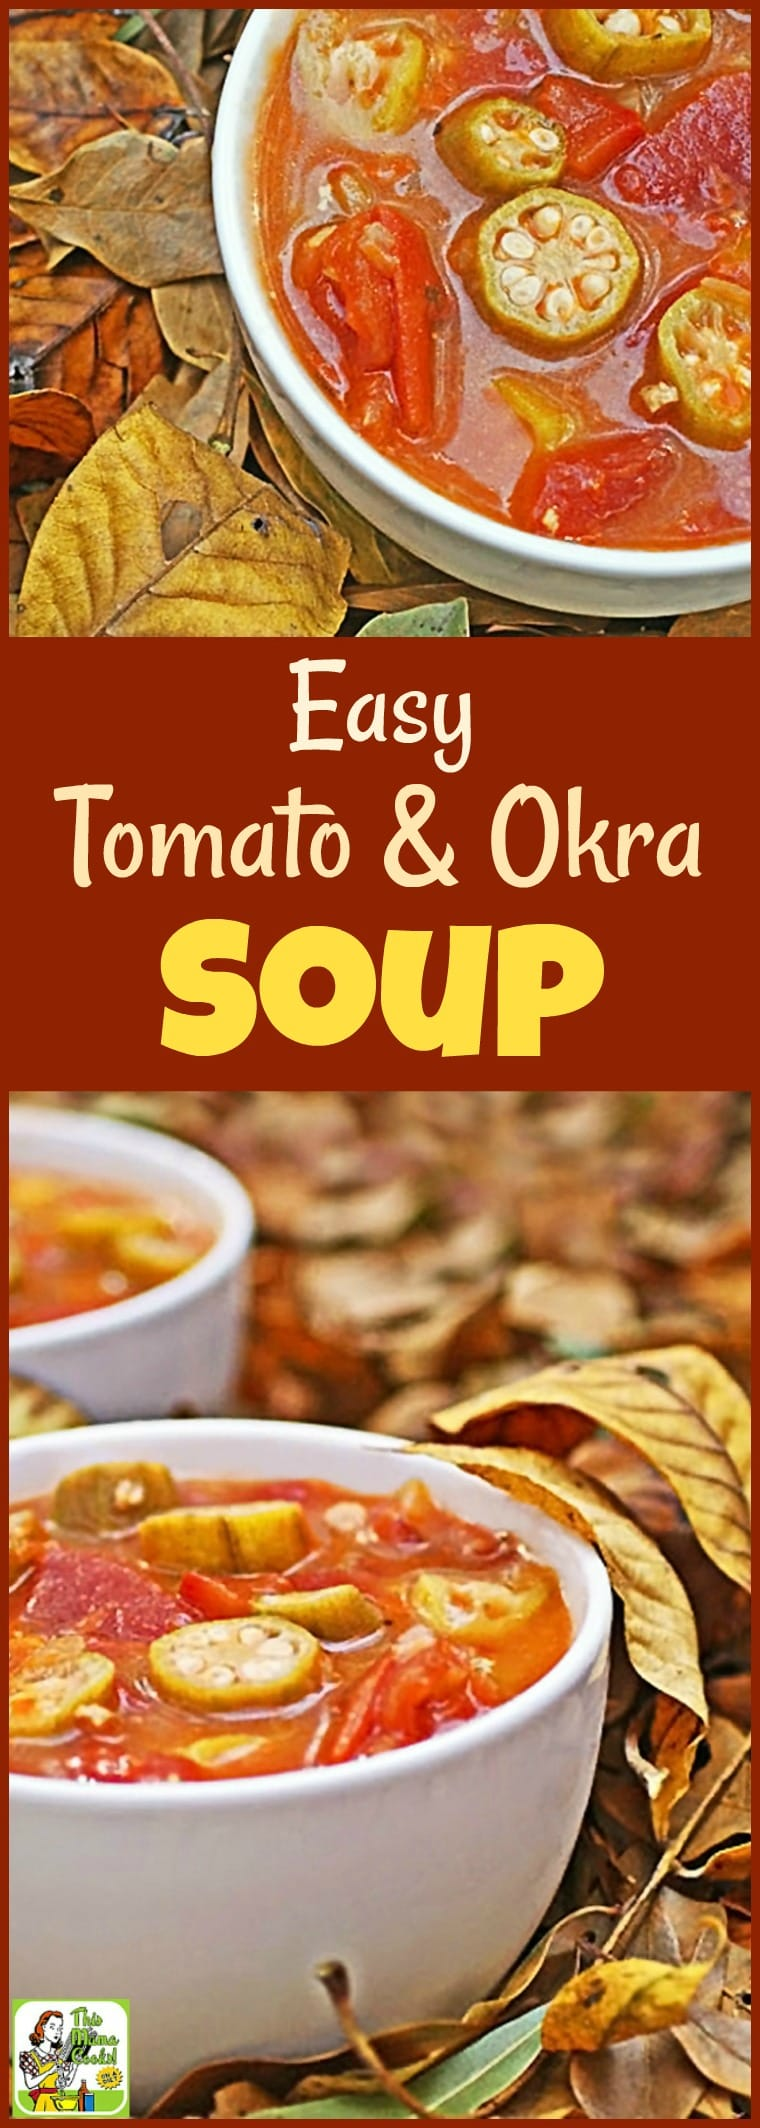 Have you ever tried okra soup? Well, if you're looking for an easy to make, healthy soup recipe, you'll love this Easy Tomato & Okra Soup recipe. So delicious, even your kids will ask for seconds! Make a double batch and freeze half for another night's soup and salad lunch or dinner. #soup #okra #tomatoes #healthysoup #glutenfree #soupandsalad #recipe #easy #recipeoftheday #healthyrecipes #easyrecipes